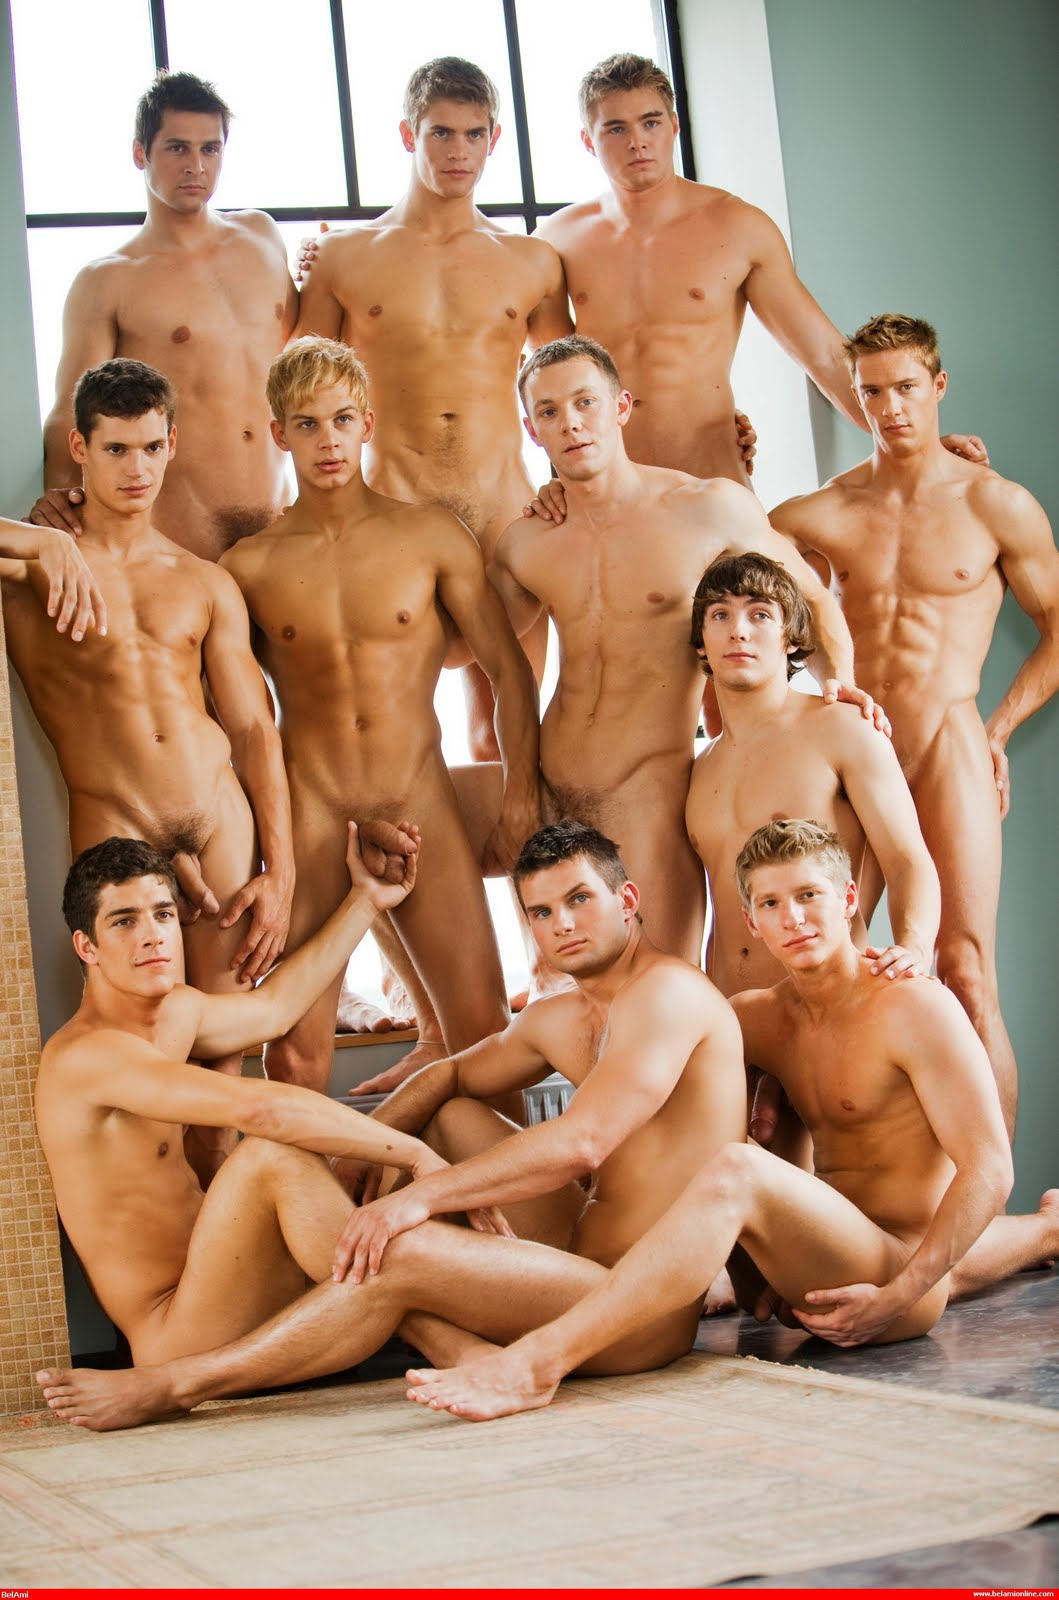 Gay Group Sex and Orgy Porn - Free Videos & Pics -